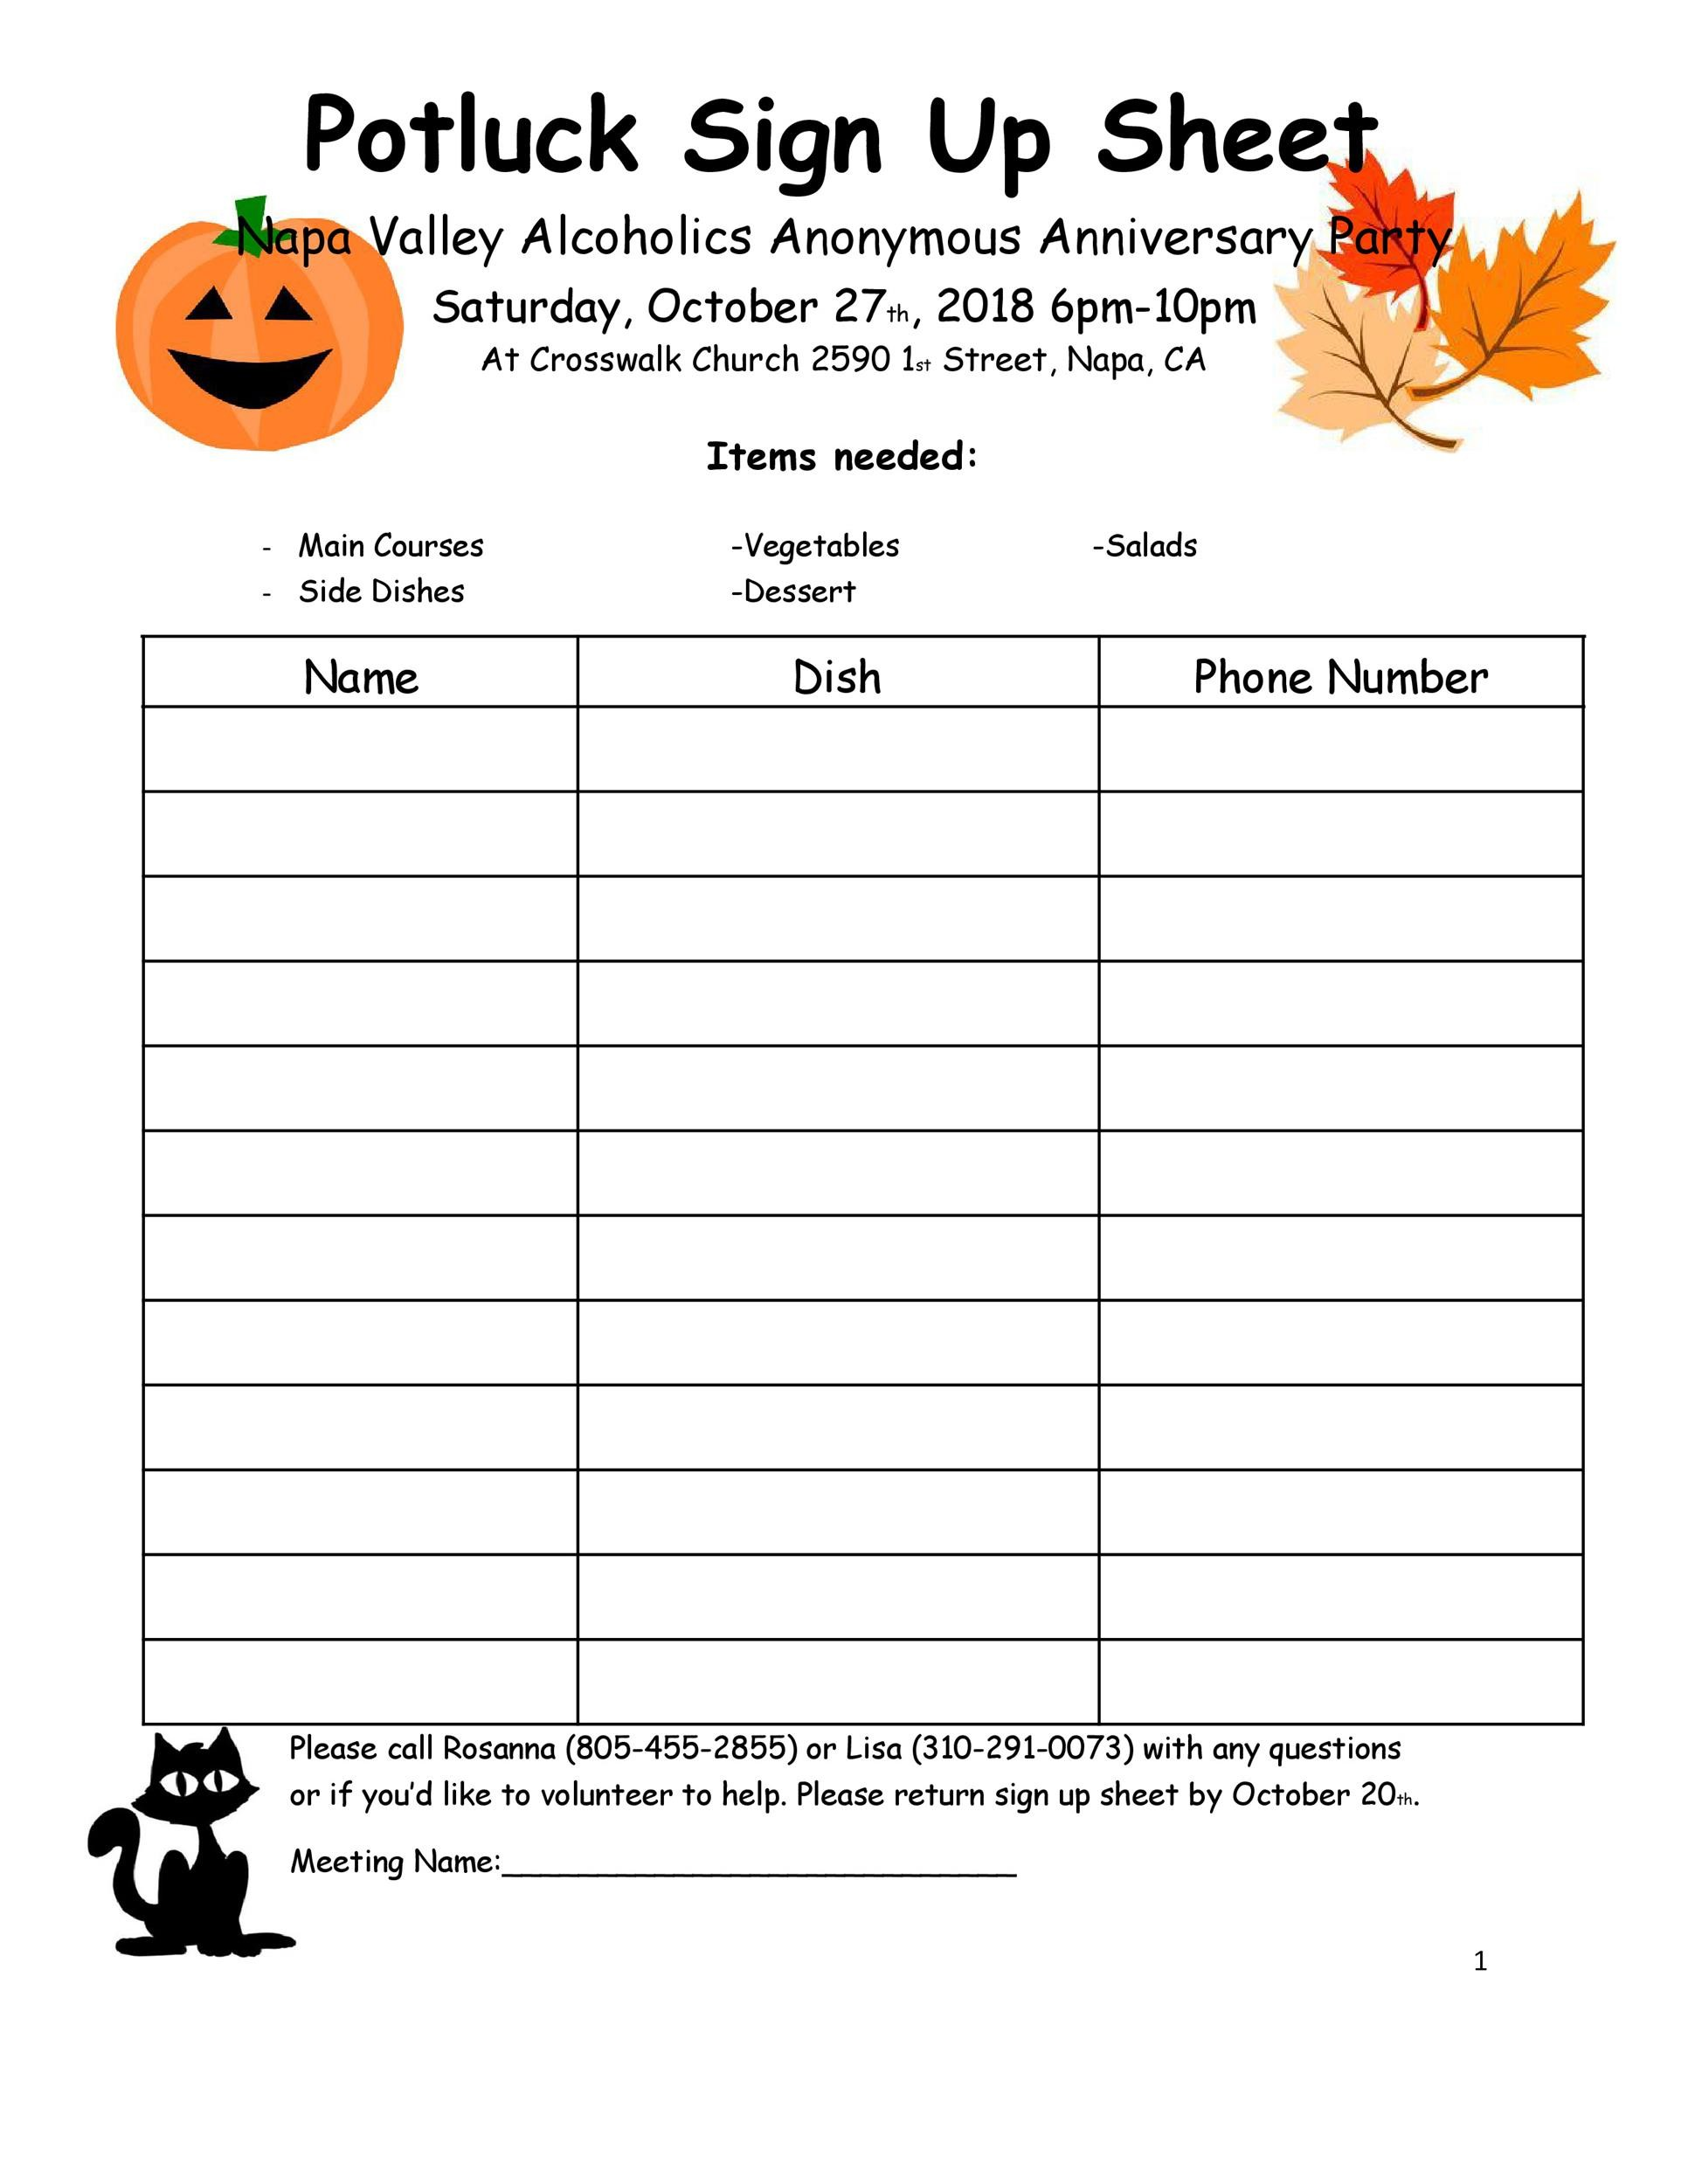 It is an image of Free Printable Potluck Sign Up Sheet Template intended for microsoft word